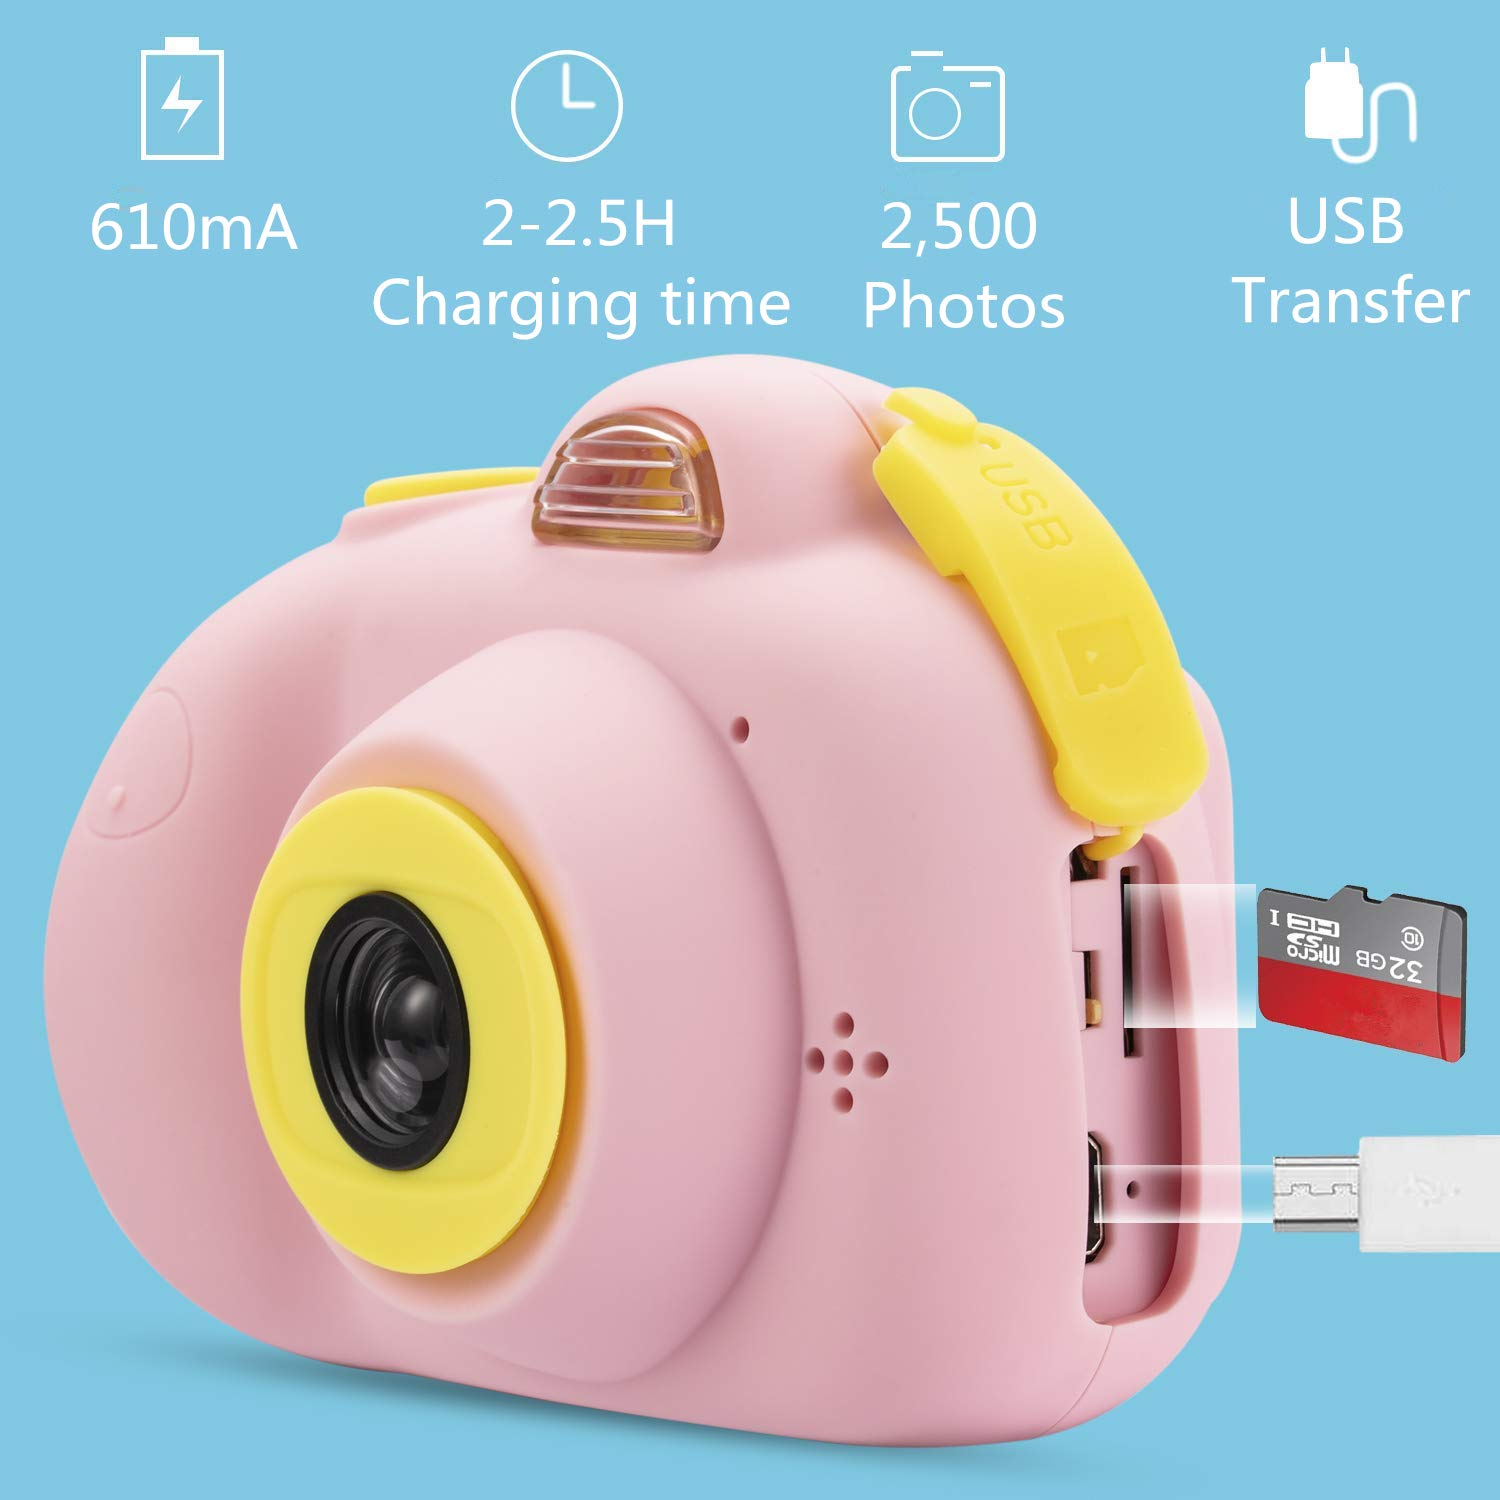 Anviker Kids Camera Gifts for 4-10 Year Old Girls, Shockproof Child Camcorder for Little Girls with Soft Silicone Shell for Outdoor Play, Pink (SD Card Not Includ) by Anviker (Image #2)